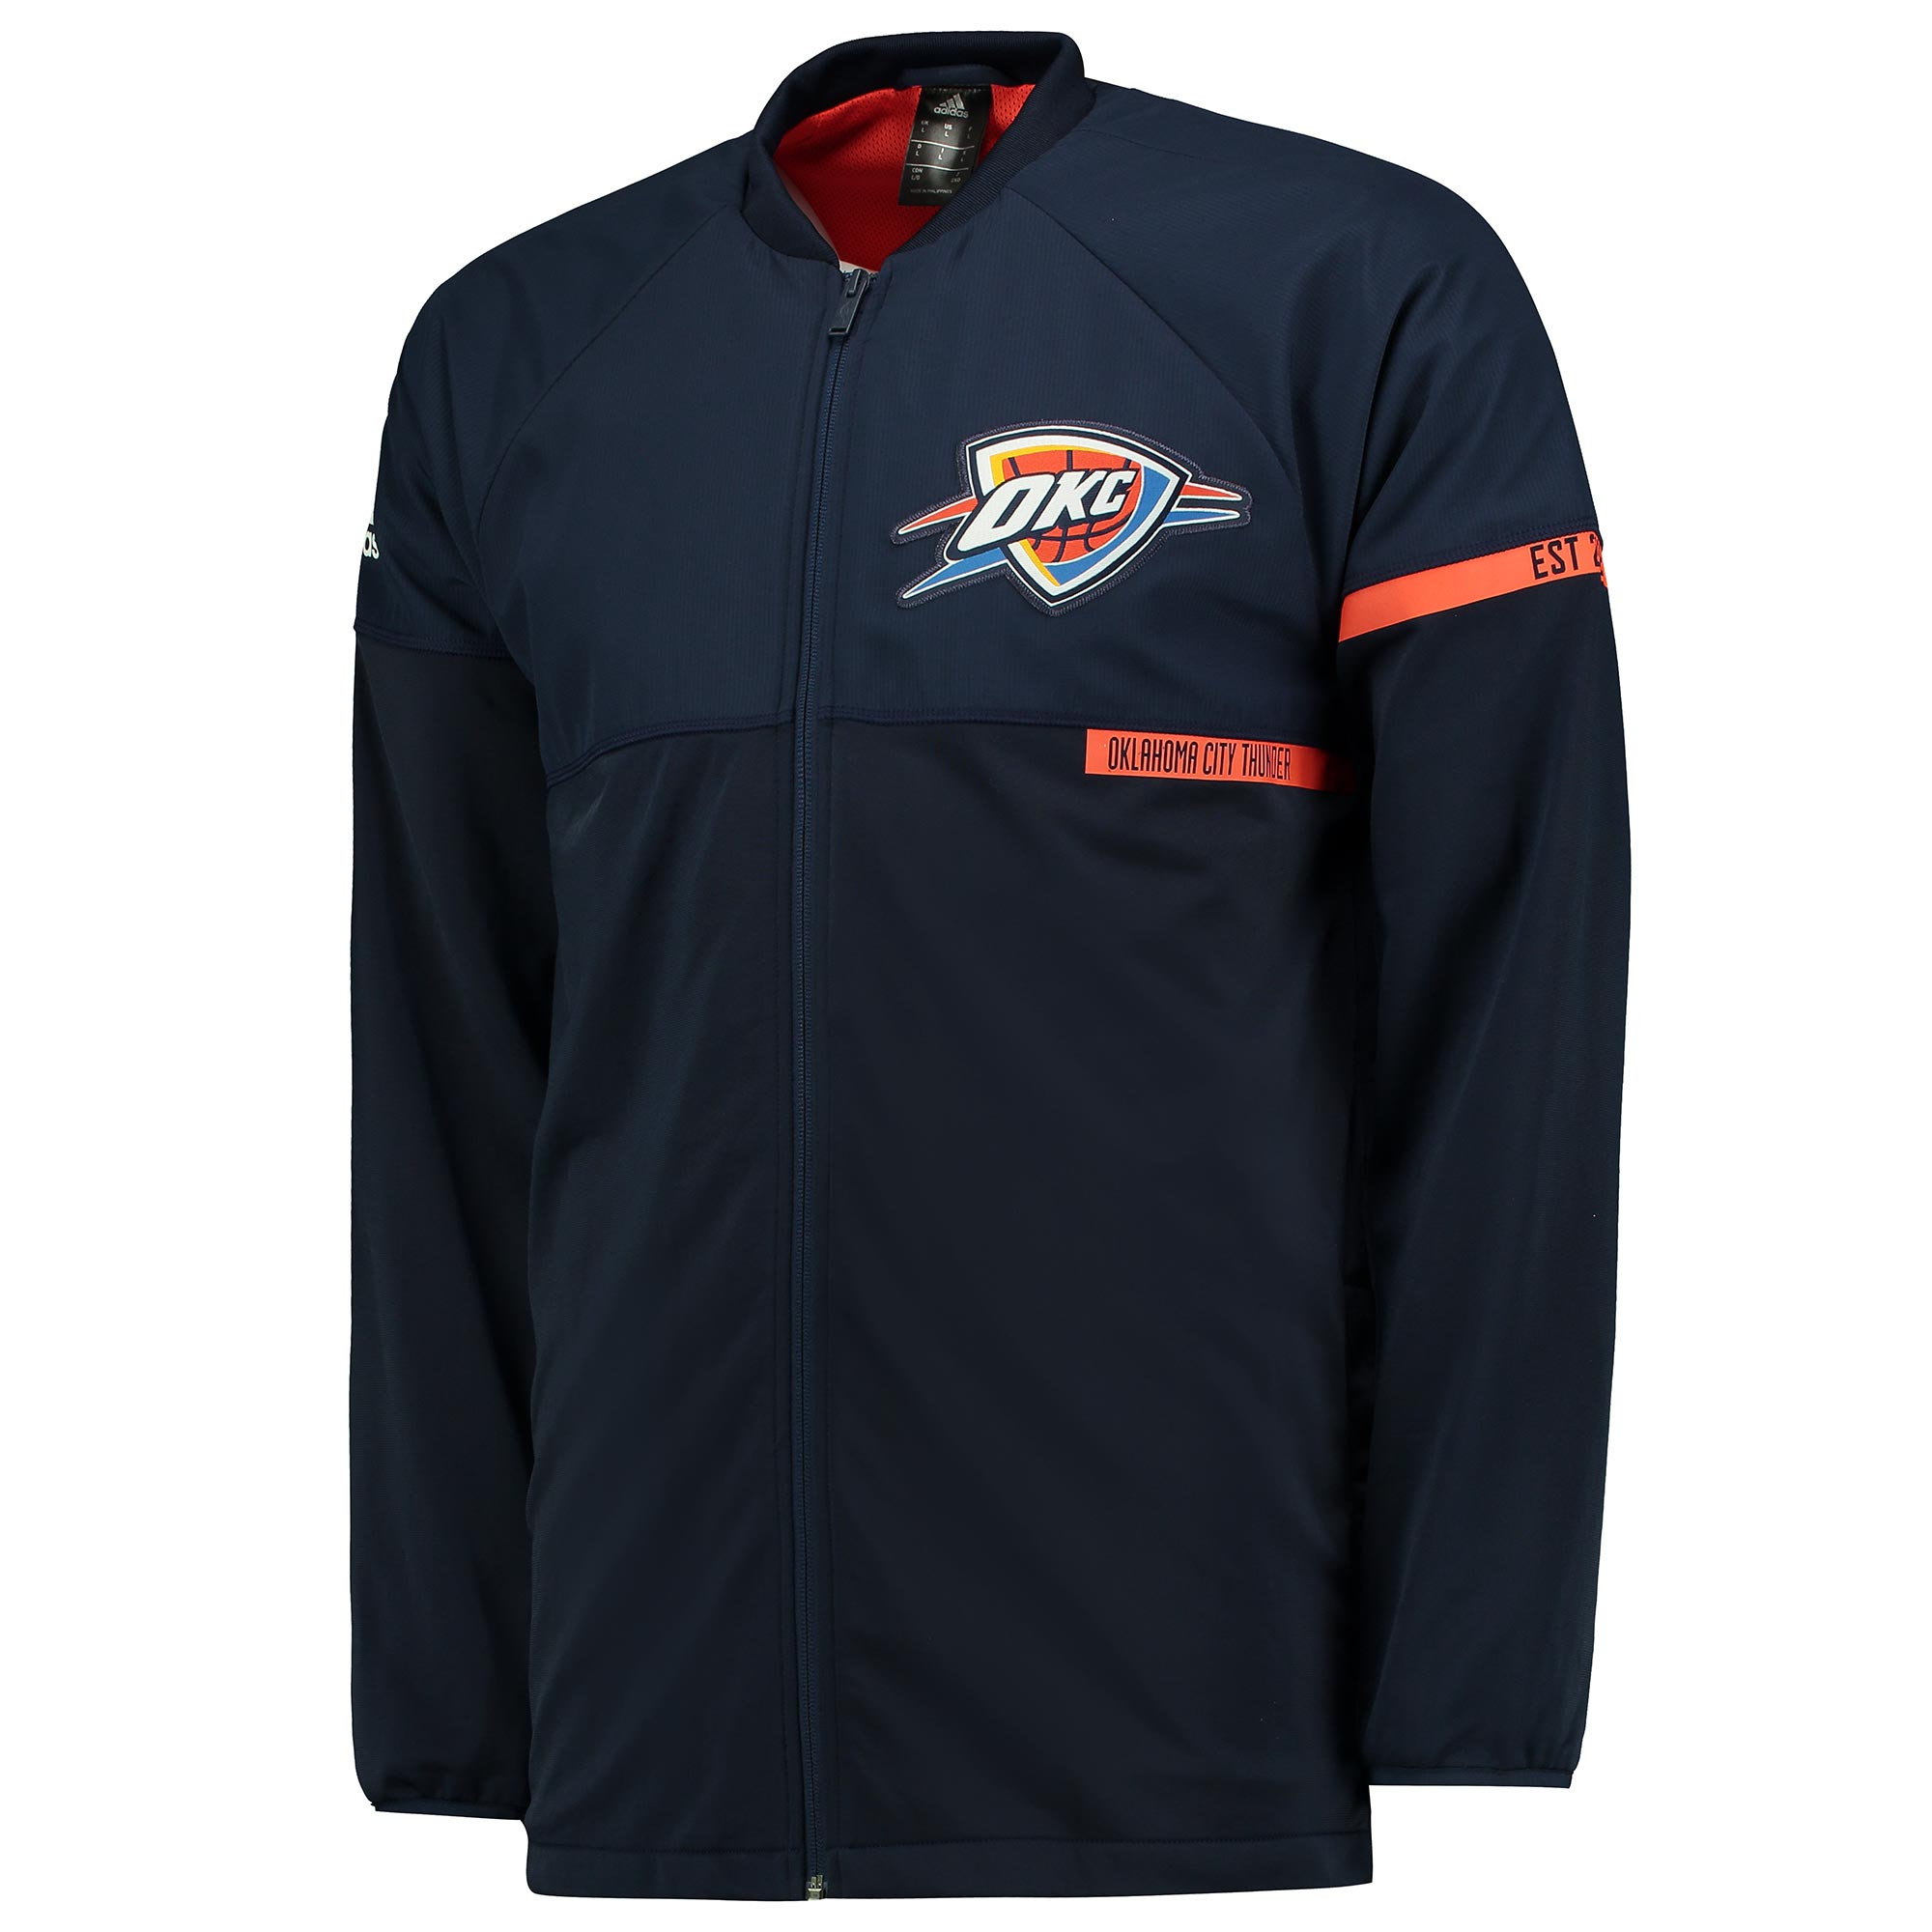 Oklahoma City Thunder On-Court Jacket 2016-17